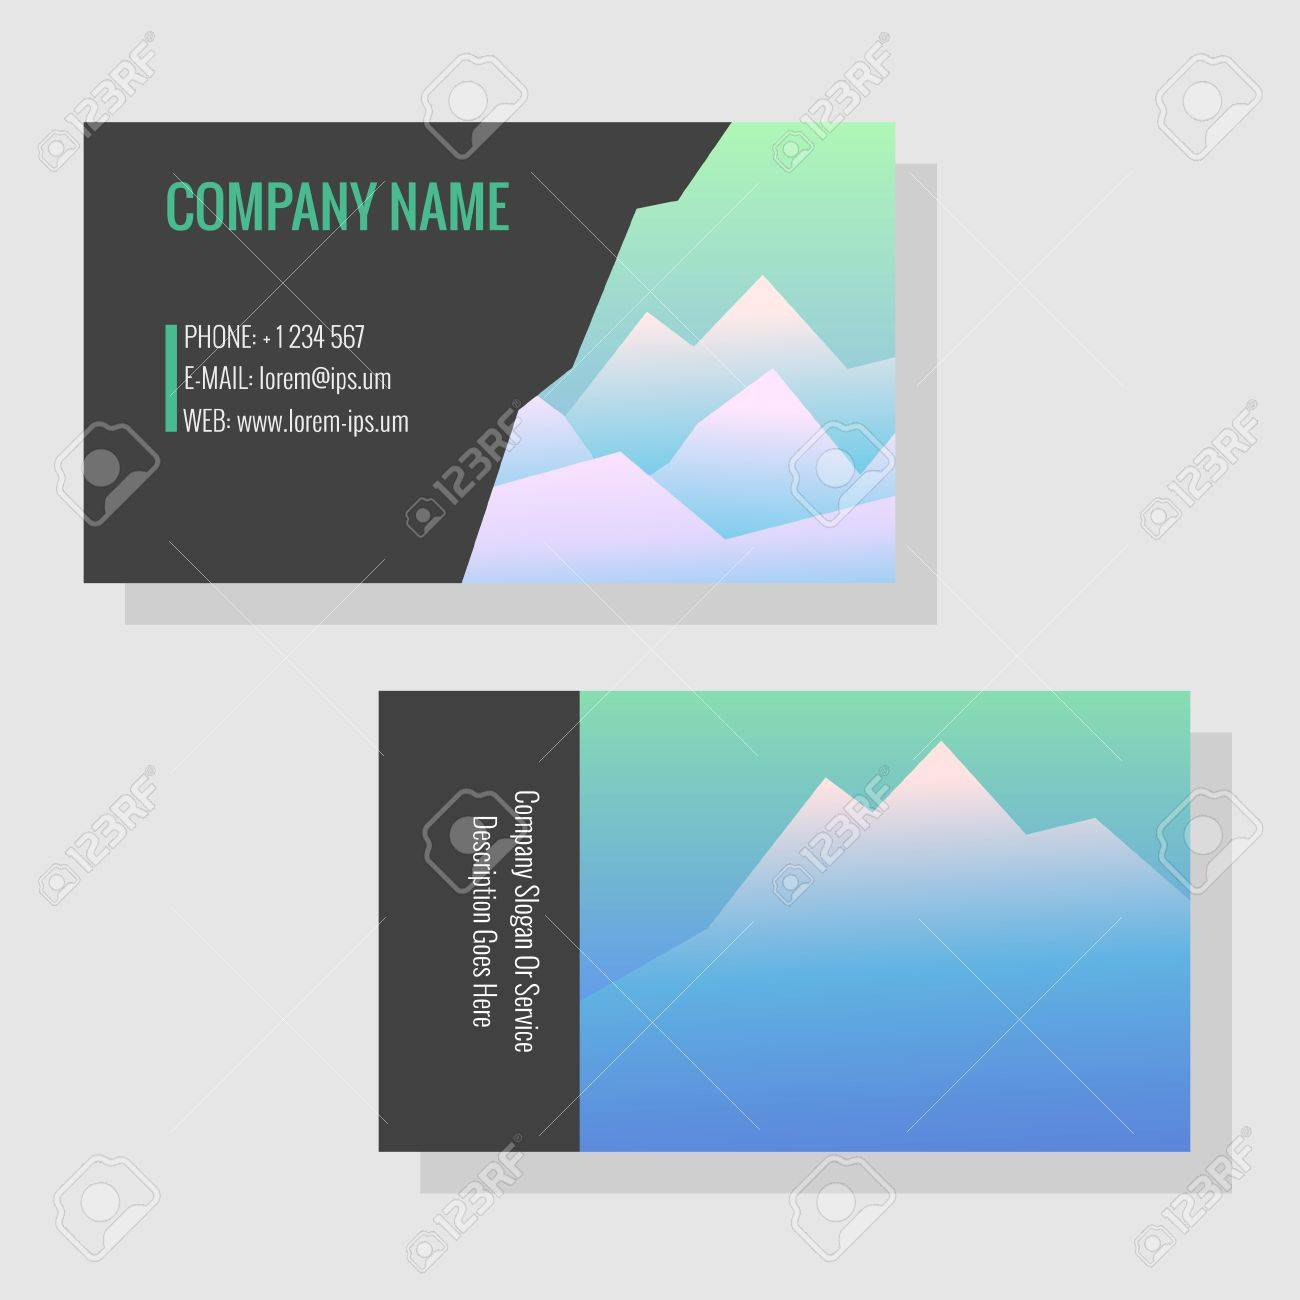 Vector Template For Business Cards. Image Of Snowy Mountains ...